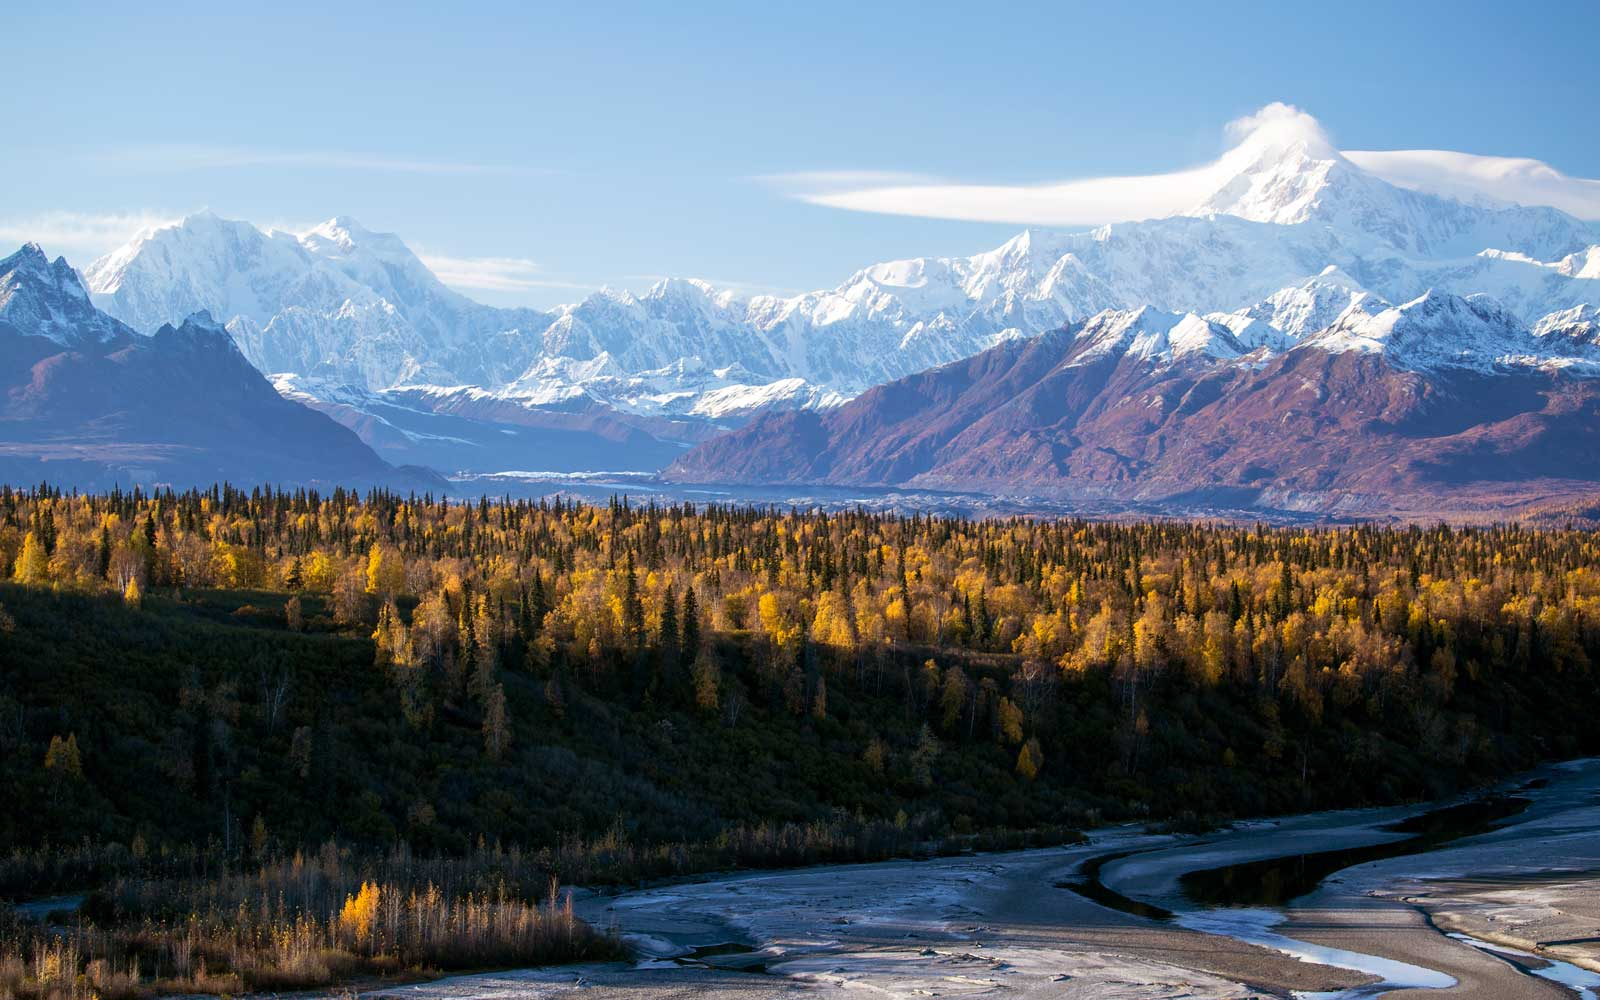 Fly to Alaska for $182 Round-trip